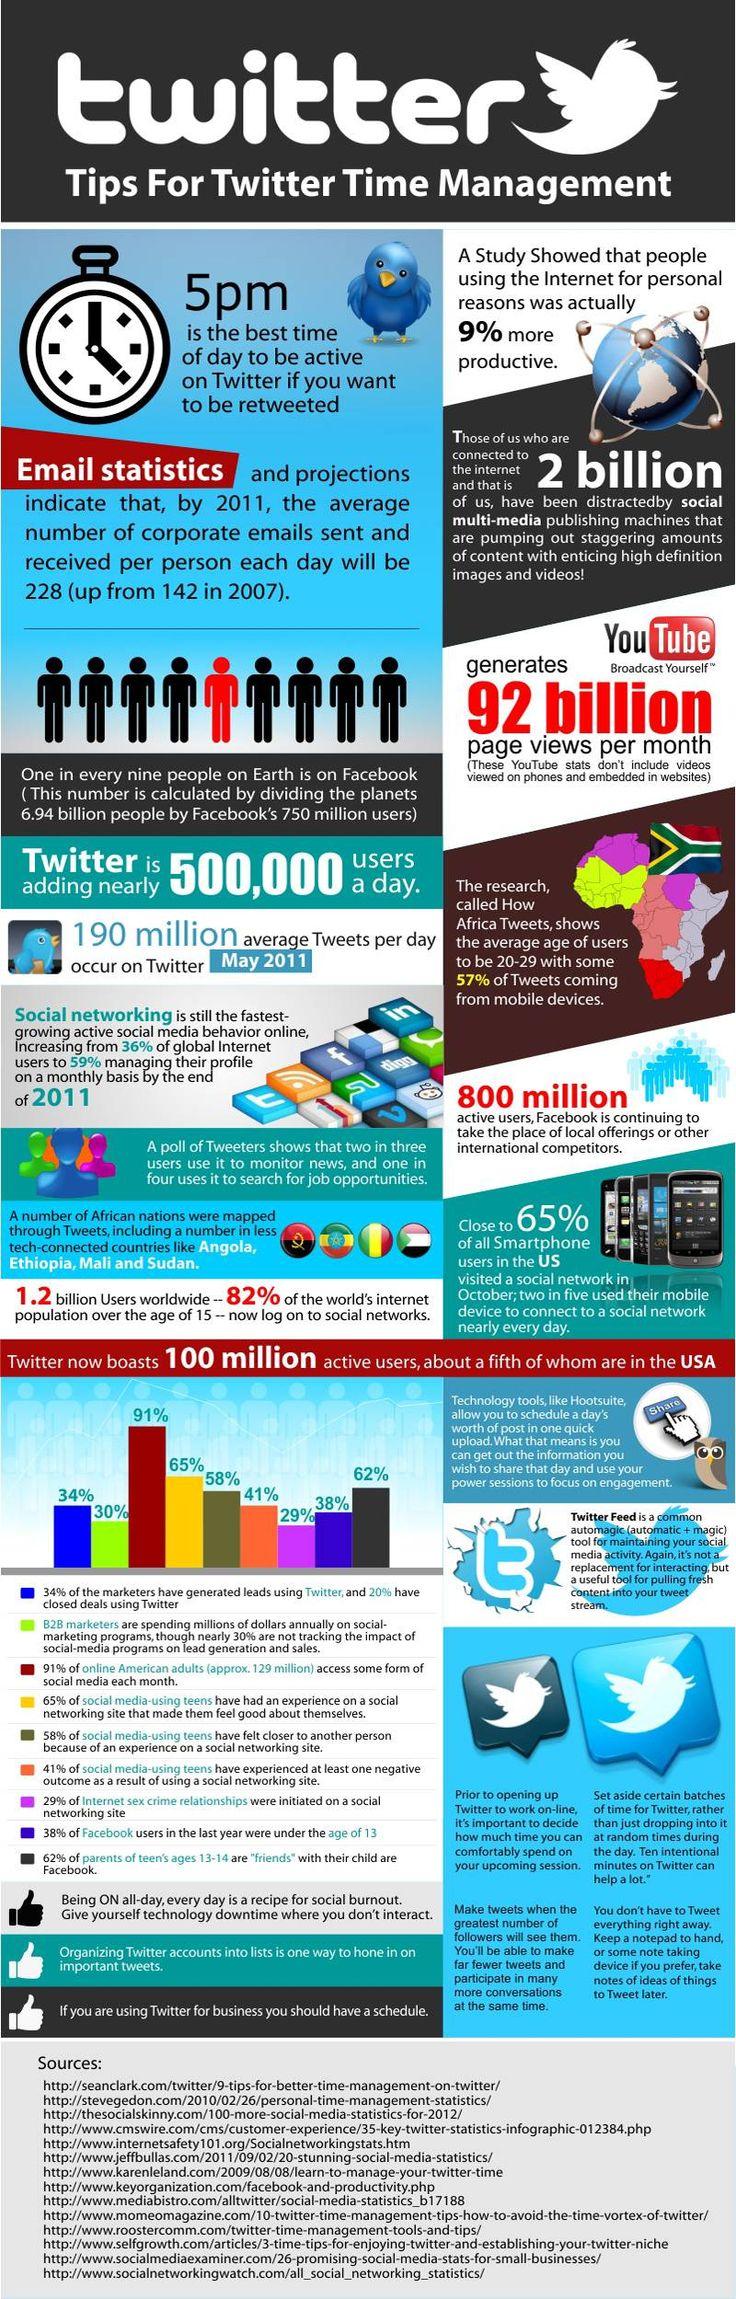 Tips For Twitter Time Management #INFOGRAPHIC #twitter